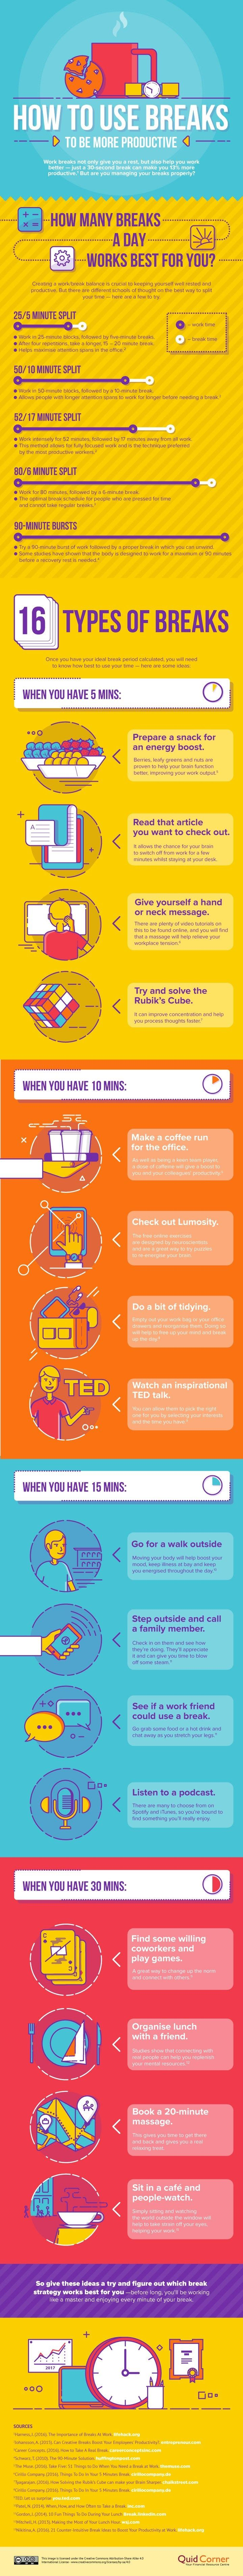 The Best Ways to Use Breaks to Be More Productive - #Infographic